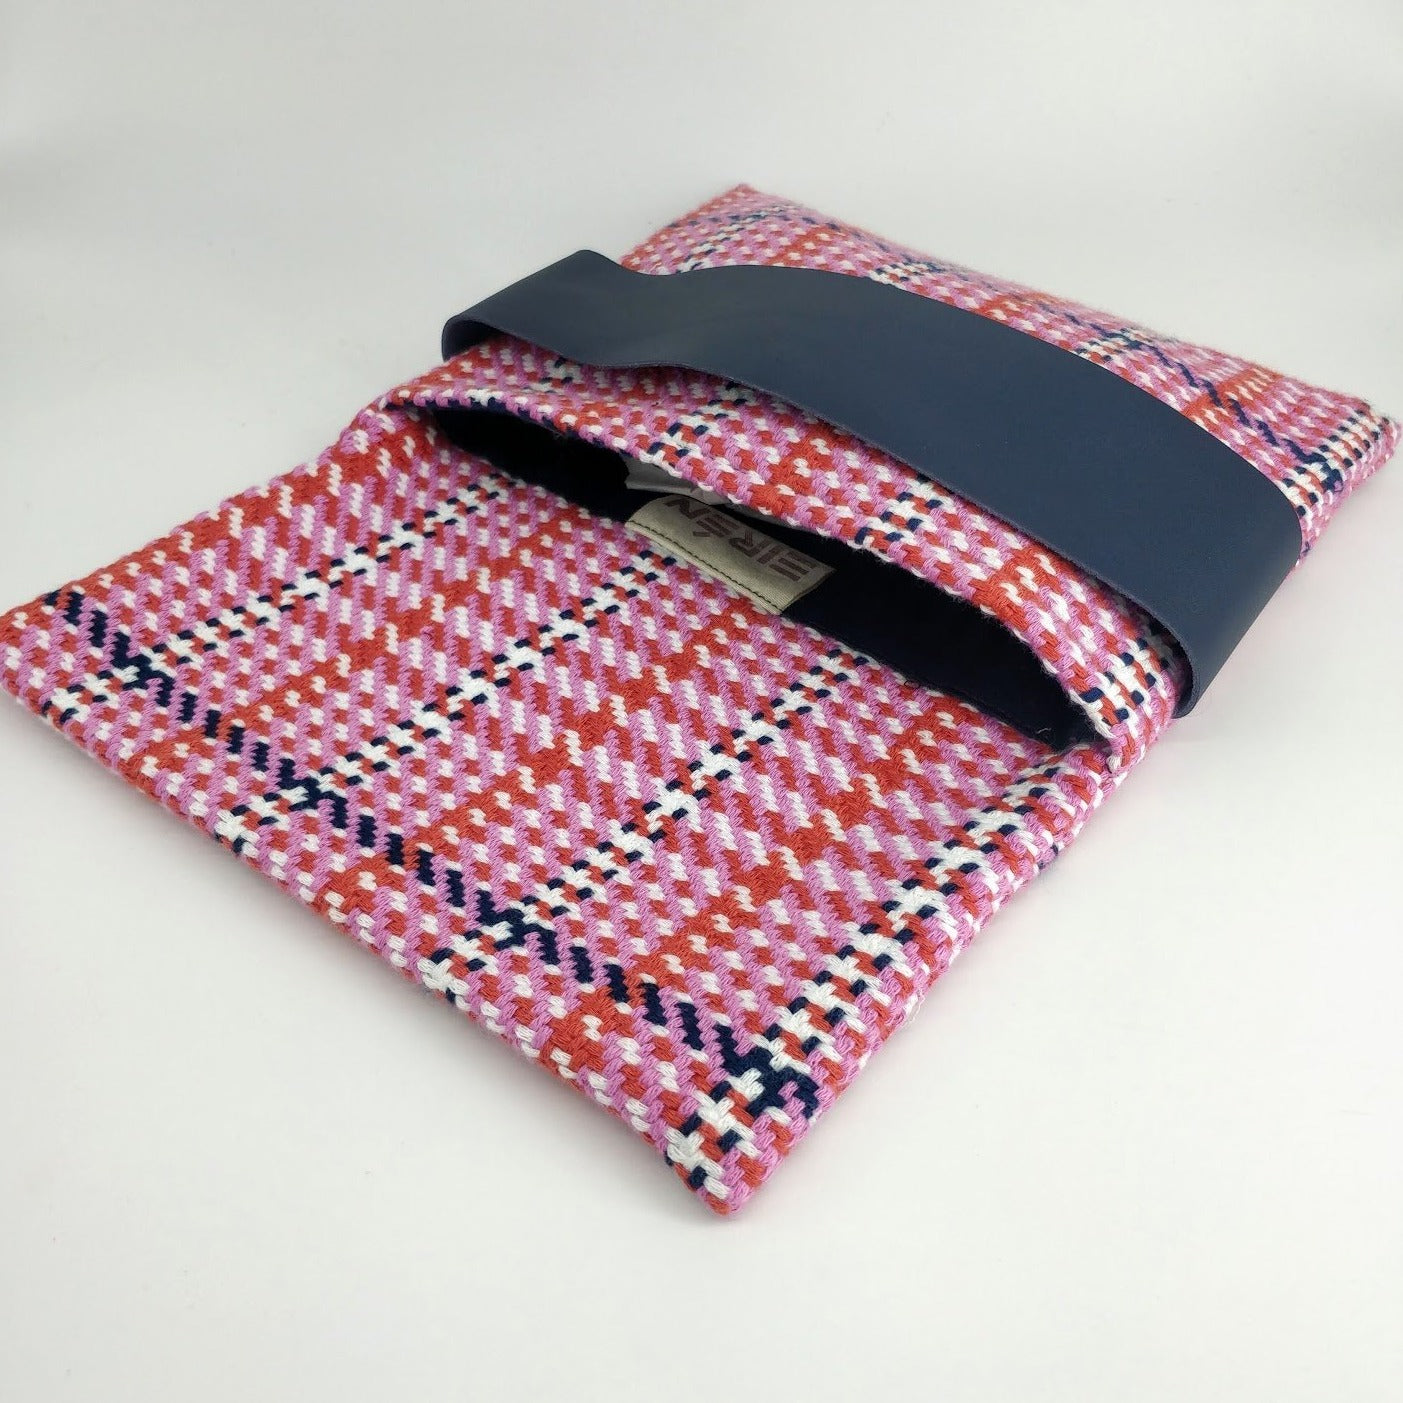 Ribbon pink tartan clutch bag